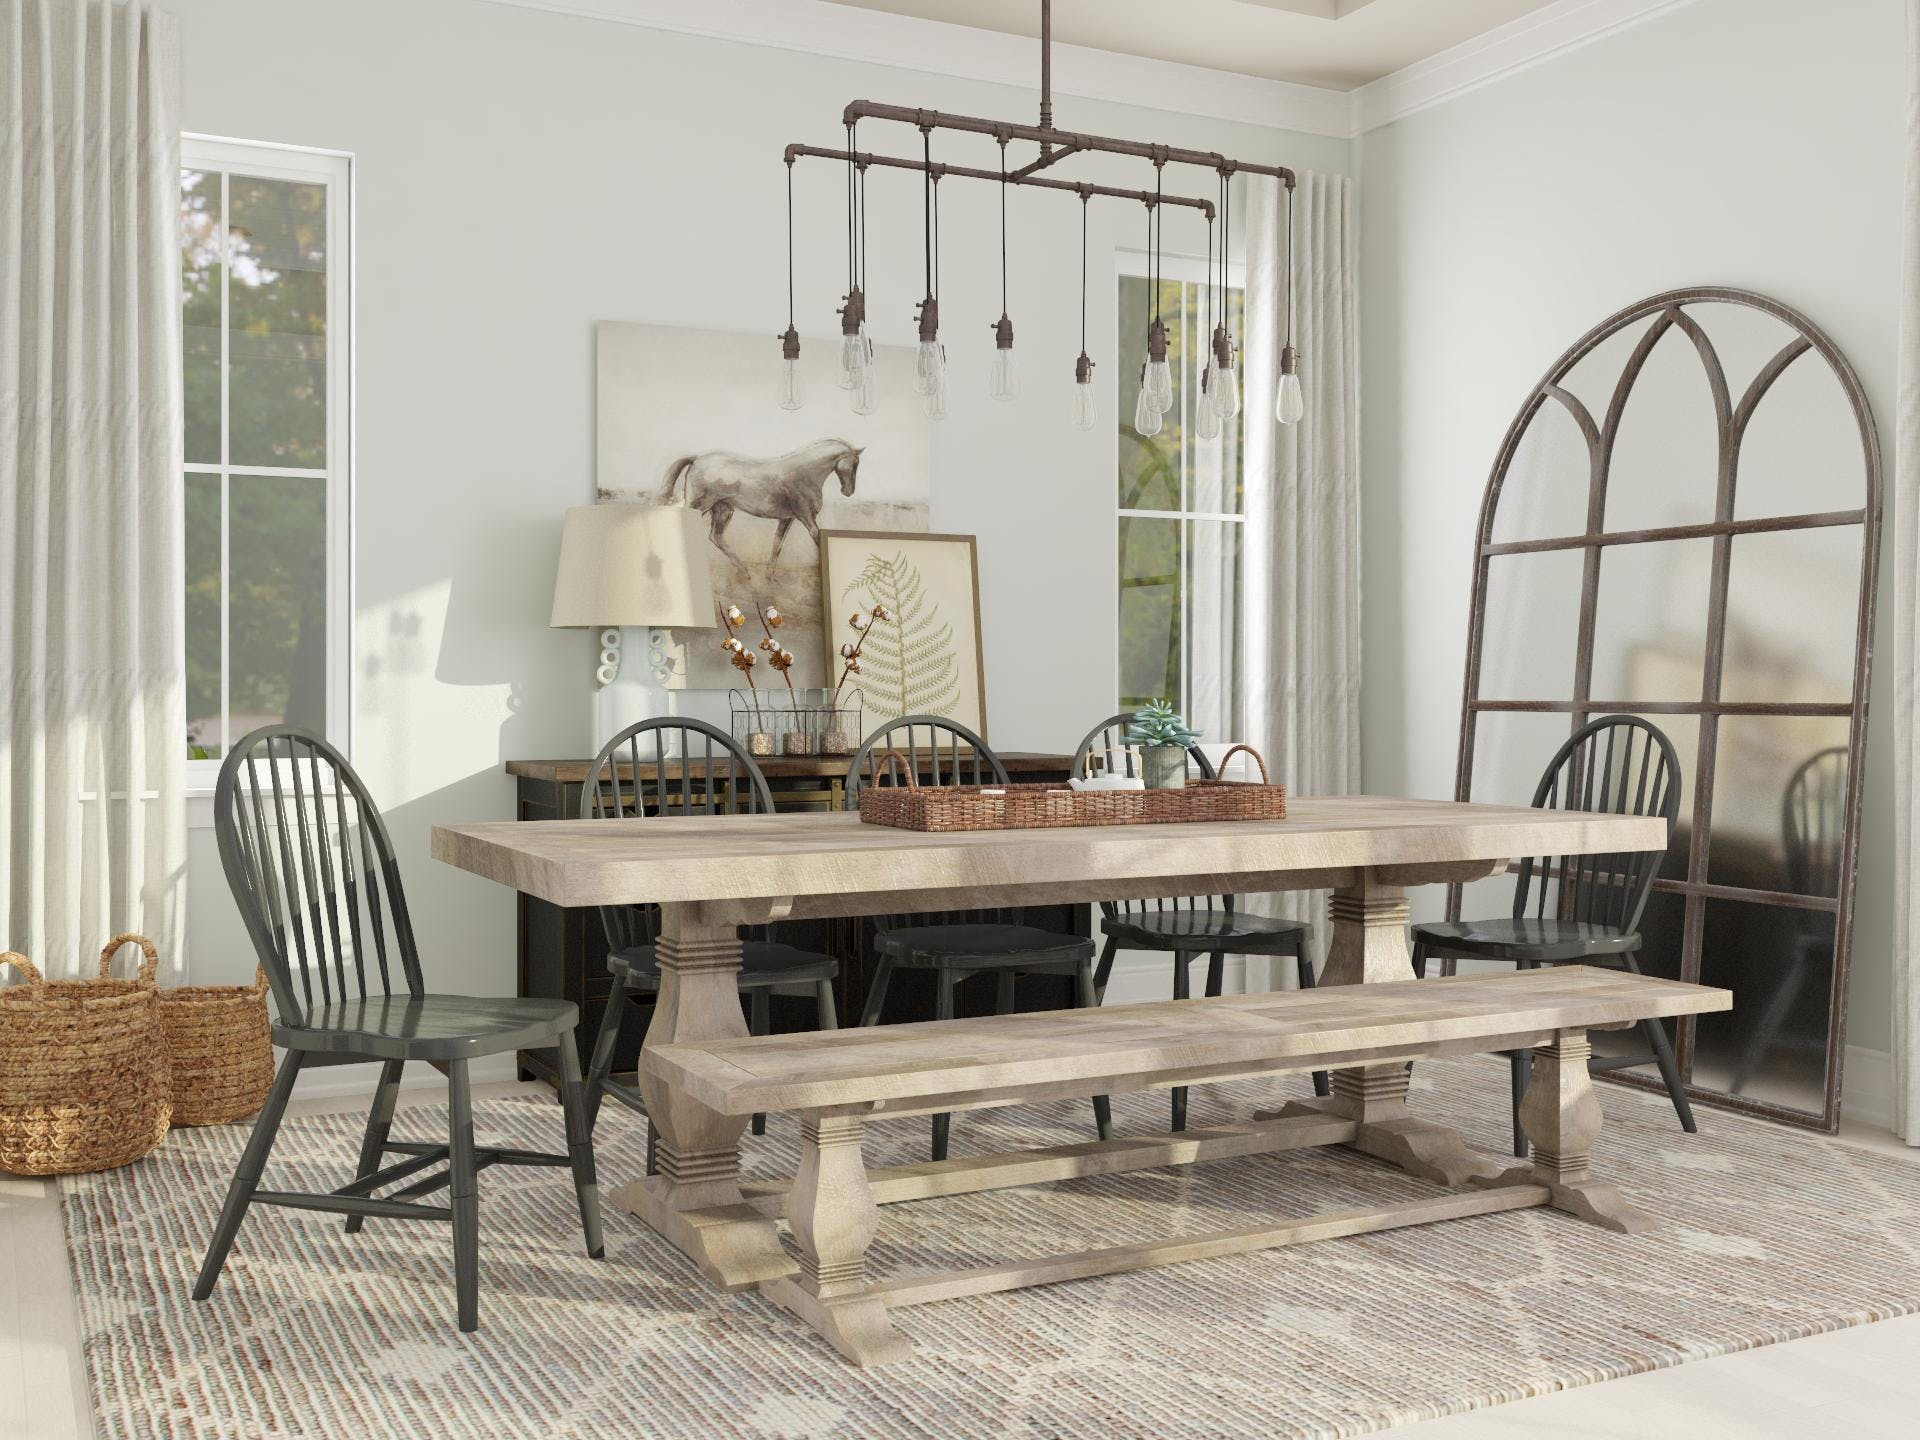 Refined Rustic Style: Dining Room Design